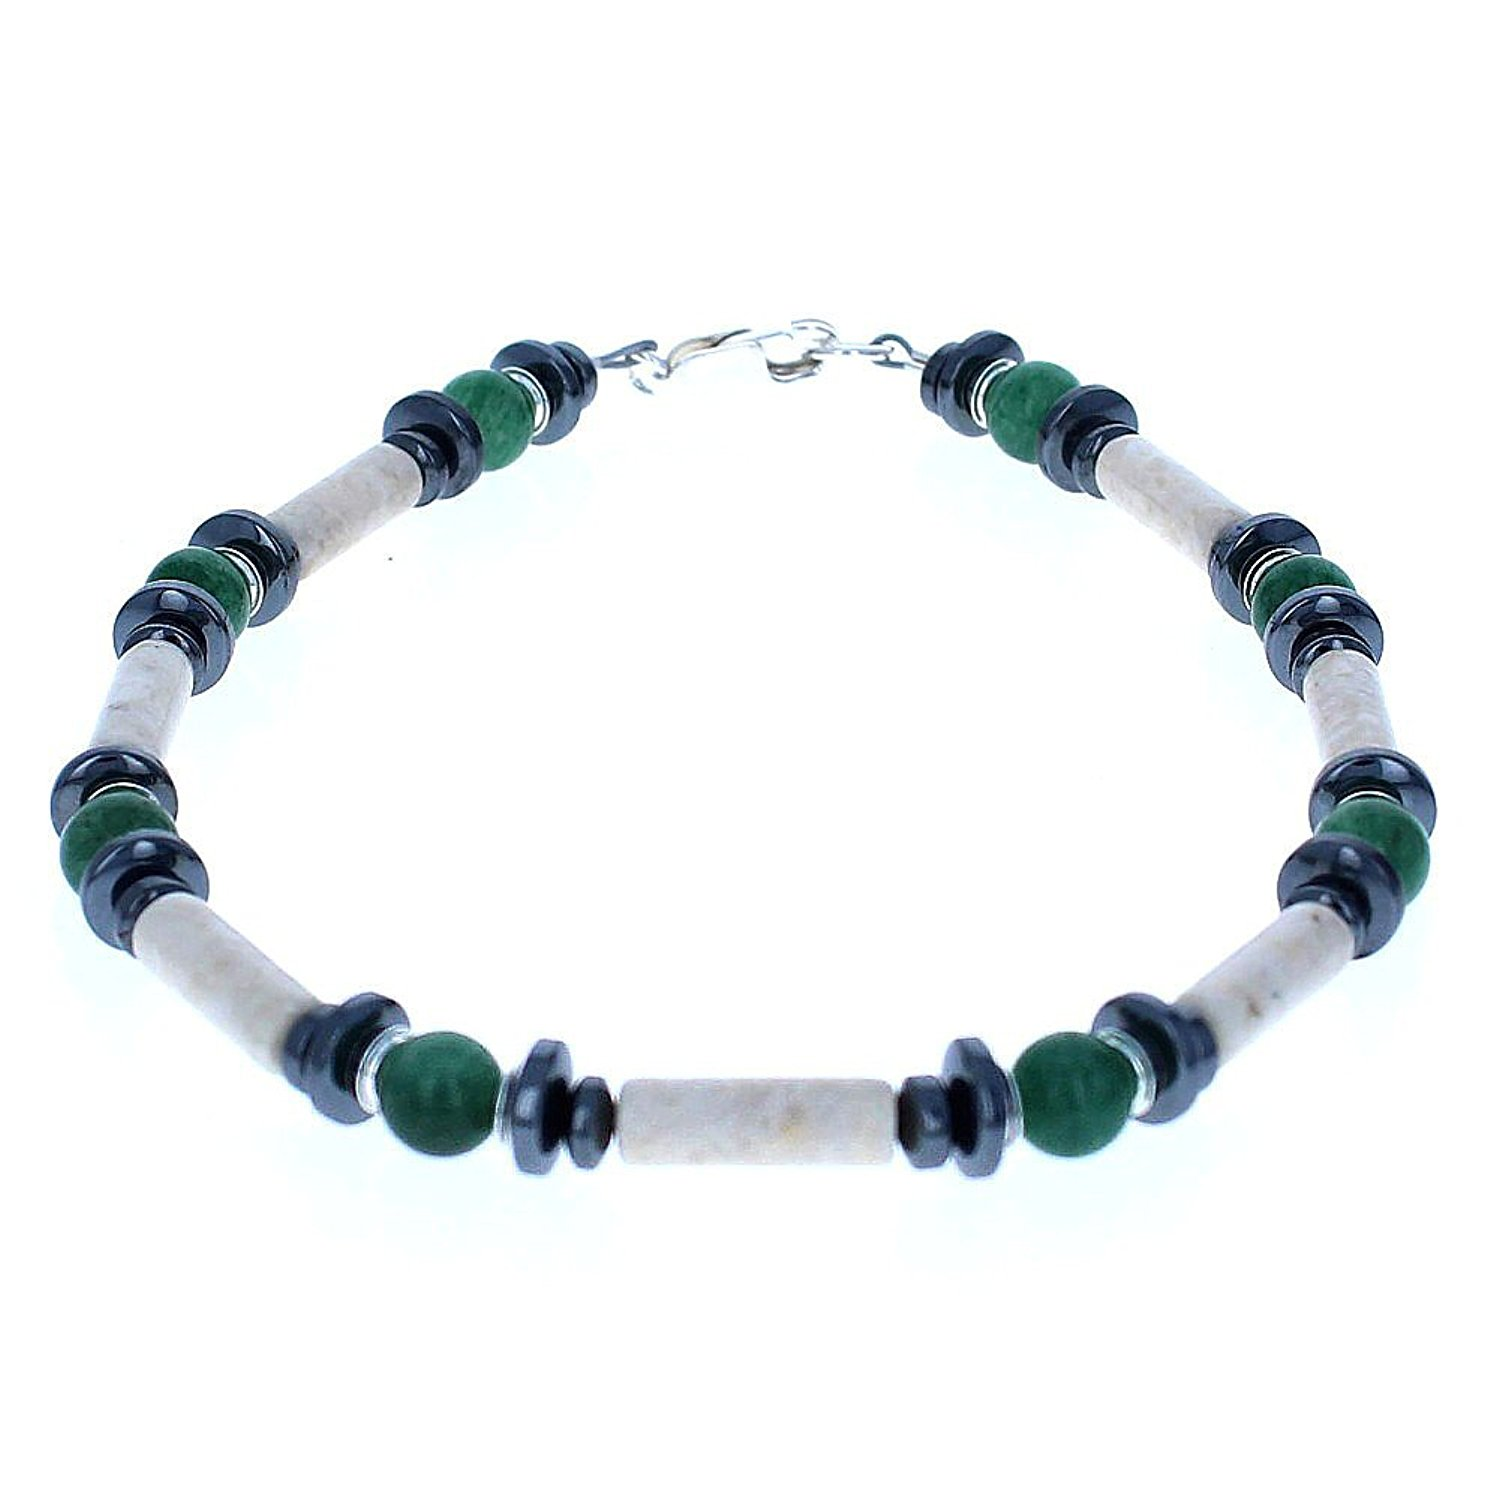 Timeless-Treasures Womens Aventurine, Riverstone, Hematite (Hemalyke) & Sterling Silver Ladies Beaded Gemstone Anklet